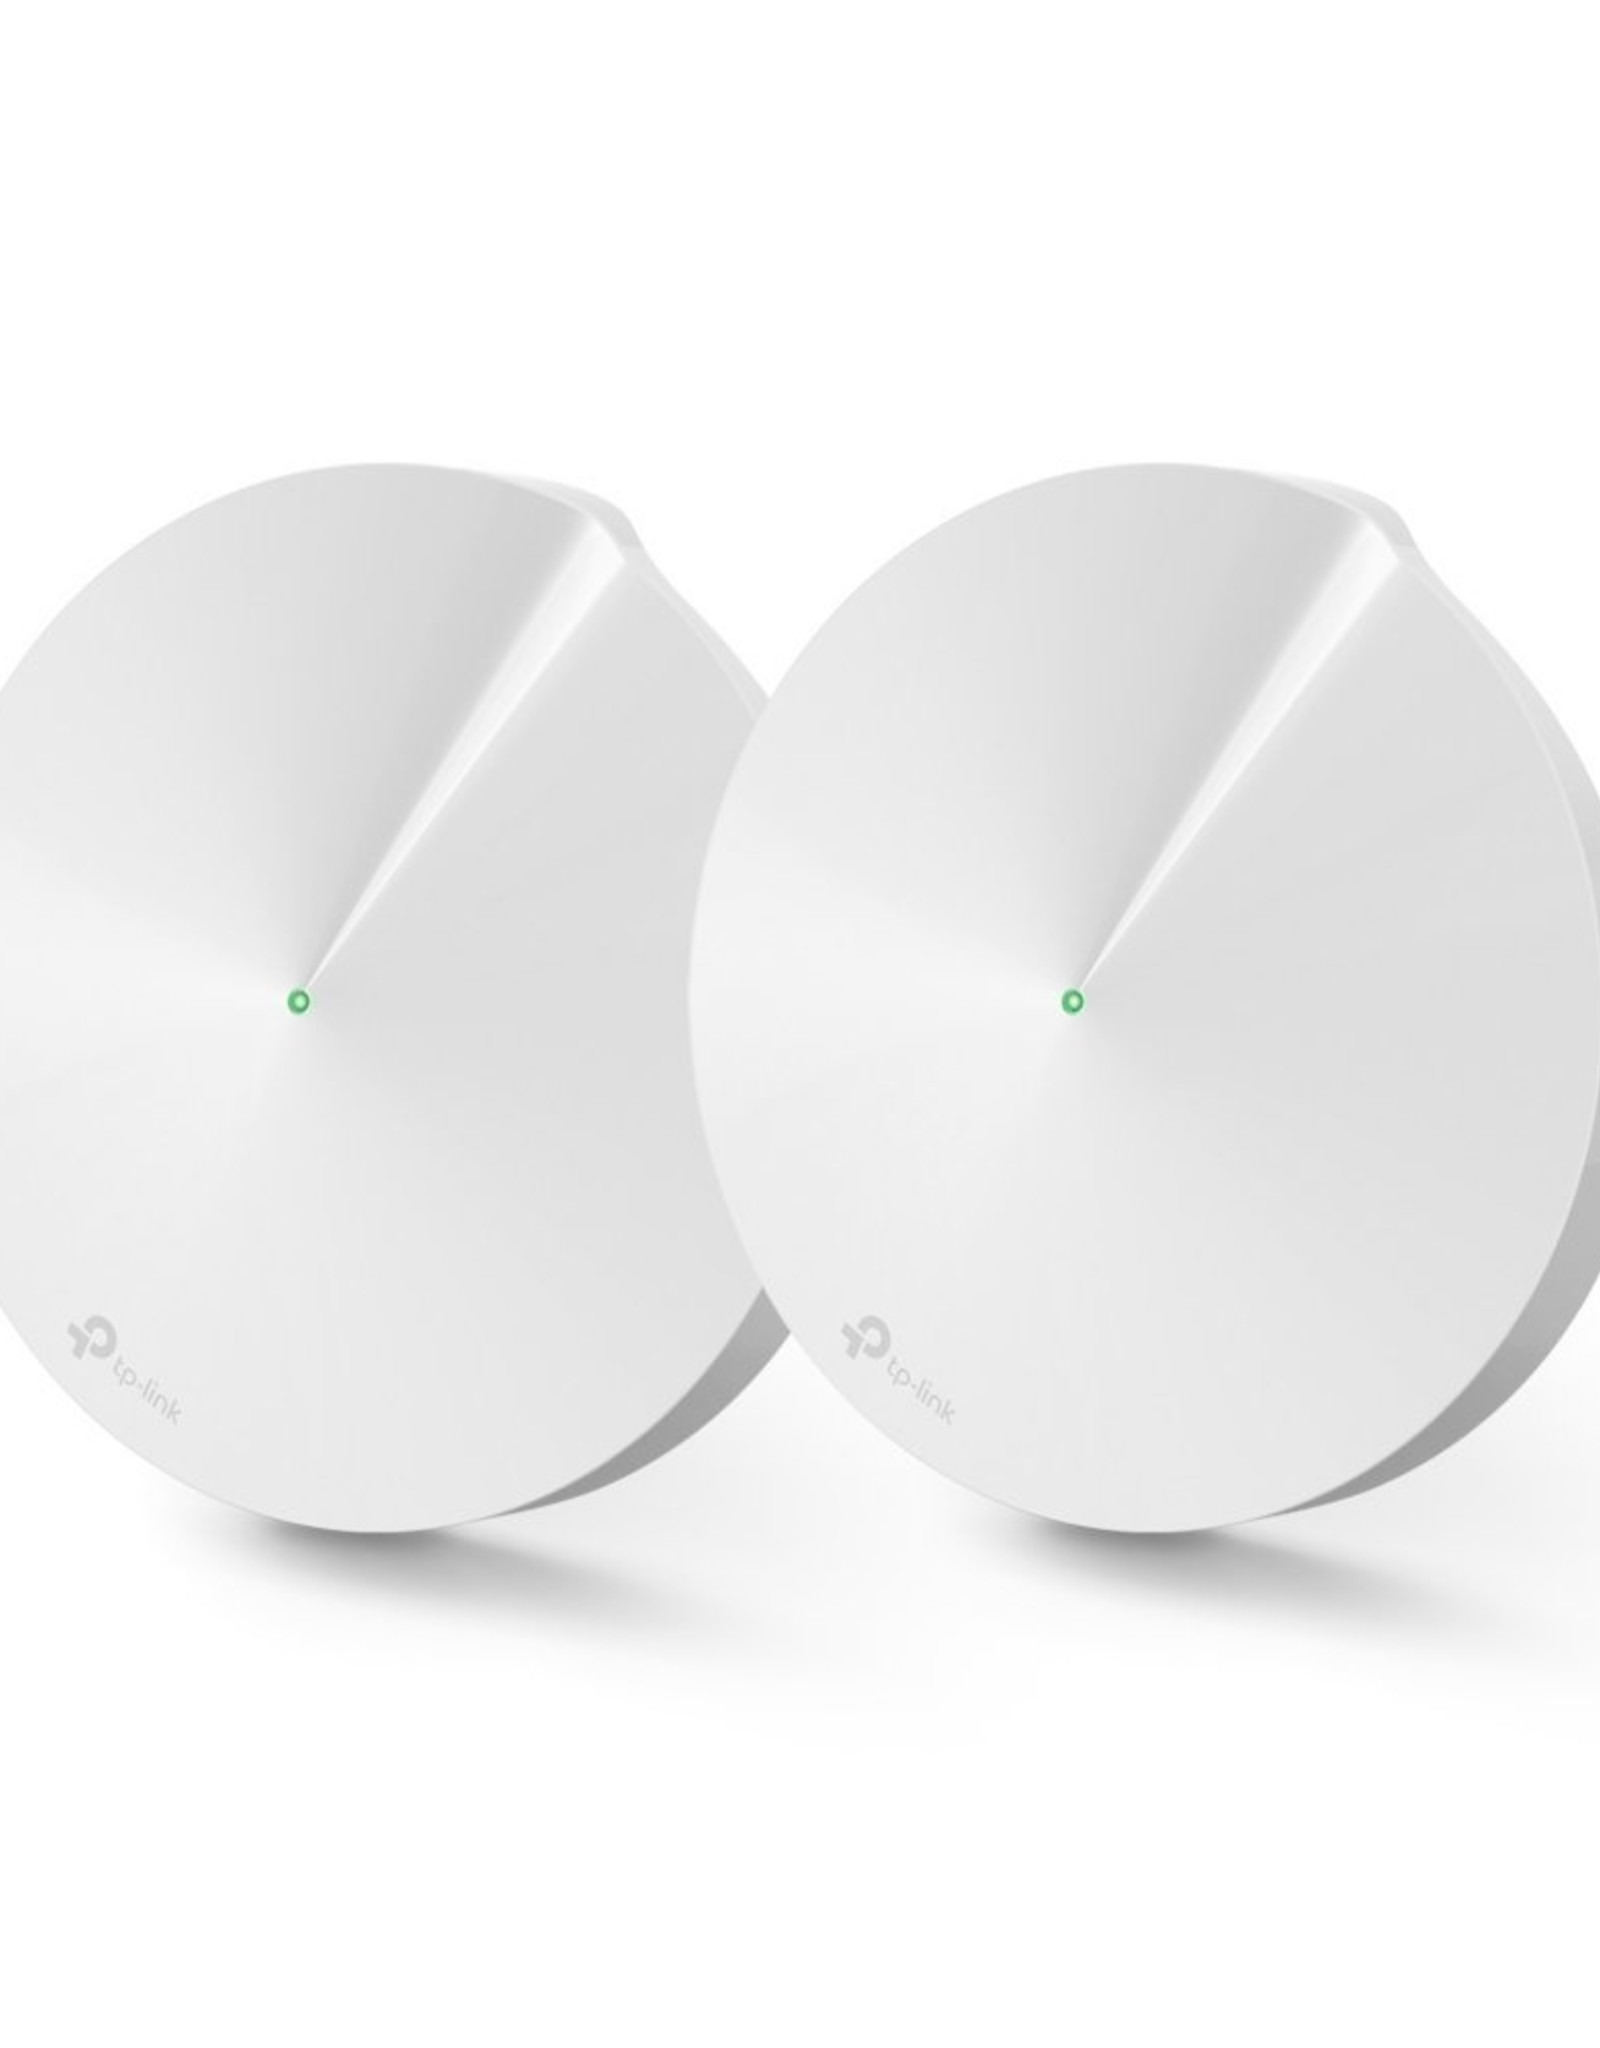 Deco M9 Plus V2 (2-pack)